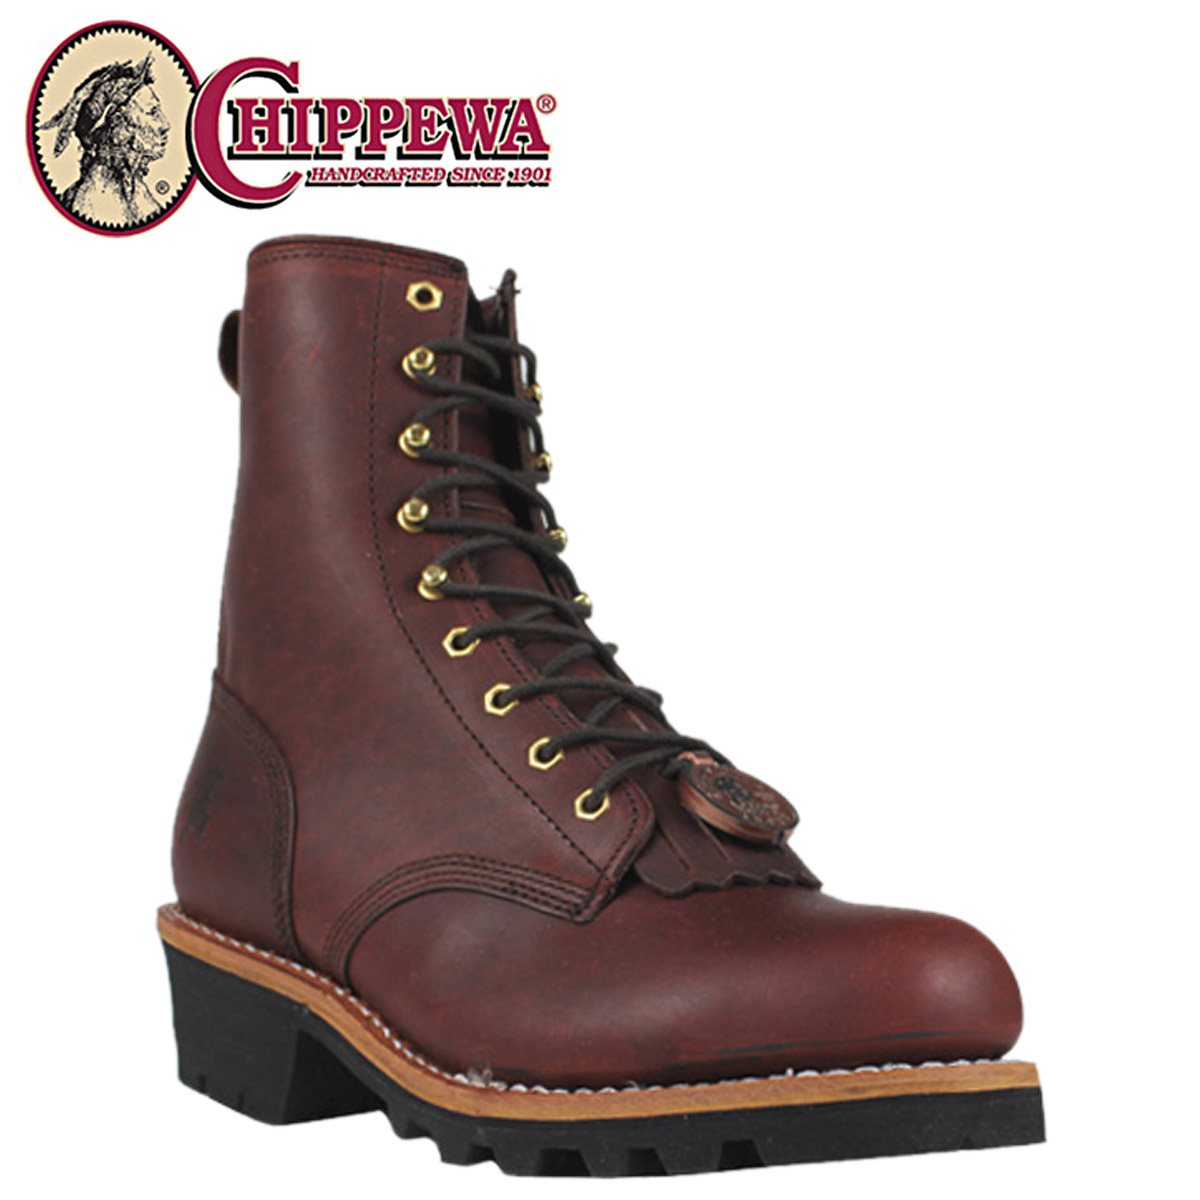 ALLSPORTS | Rakuten Global Market: [SOLD OUT]-Chippewa CHIPPEWA ...